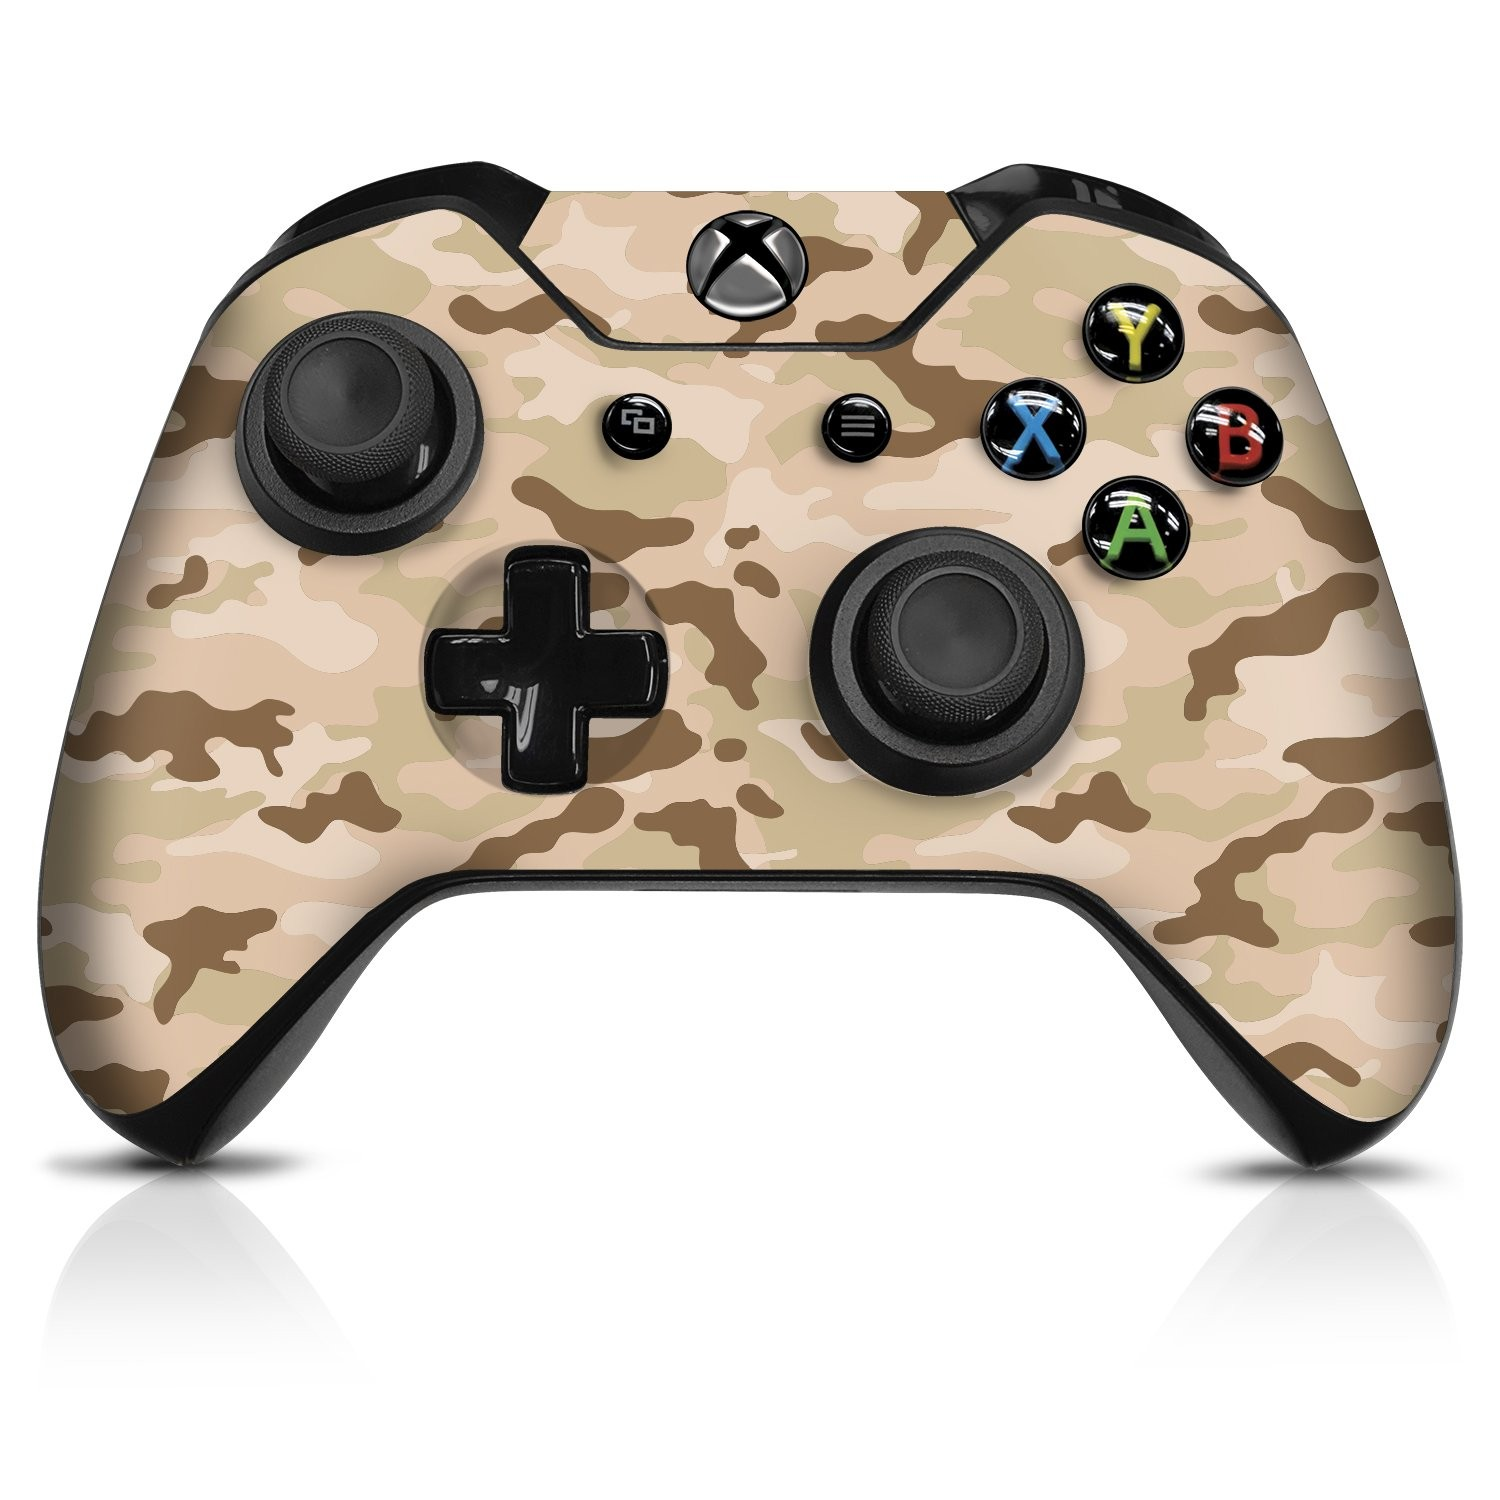 Desert Camo  Xbox One Controller Skin - Officially Licensed by Xbox - Controller Gear